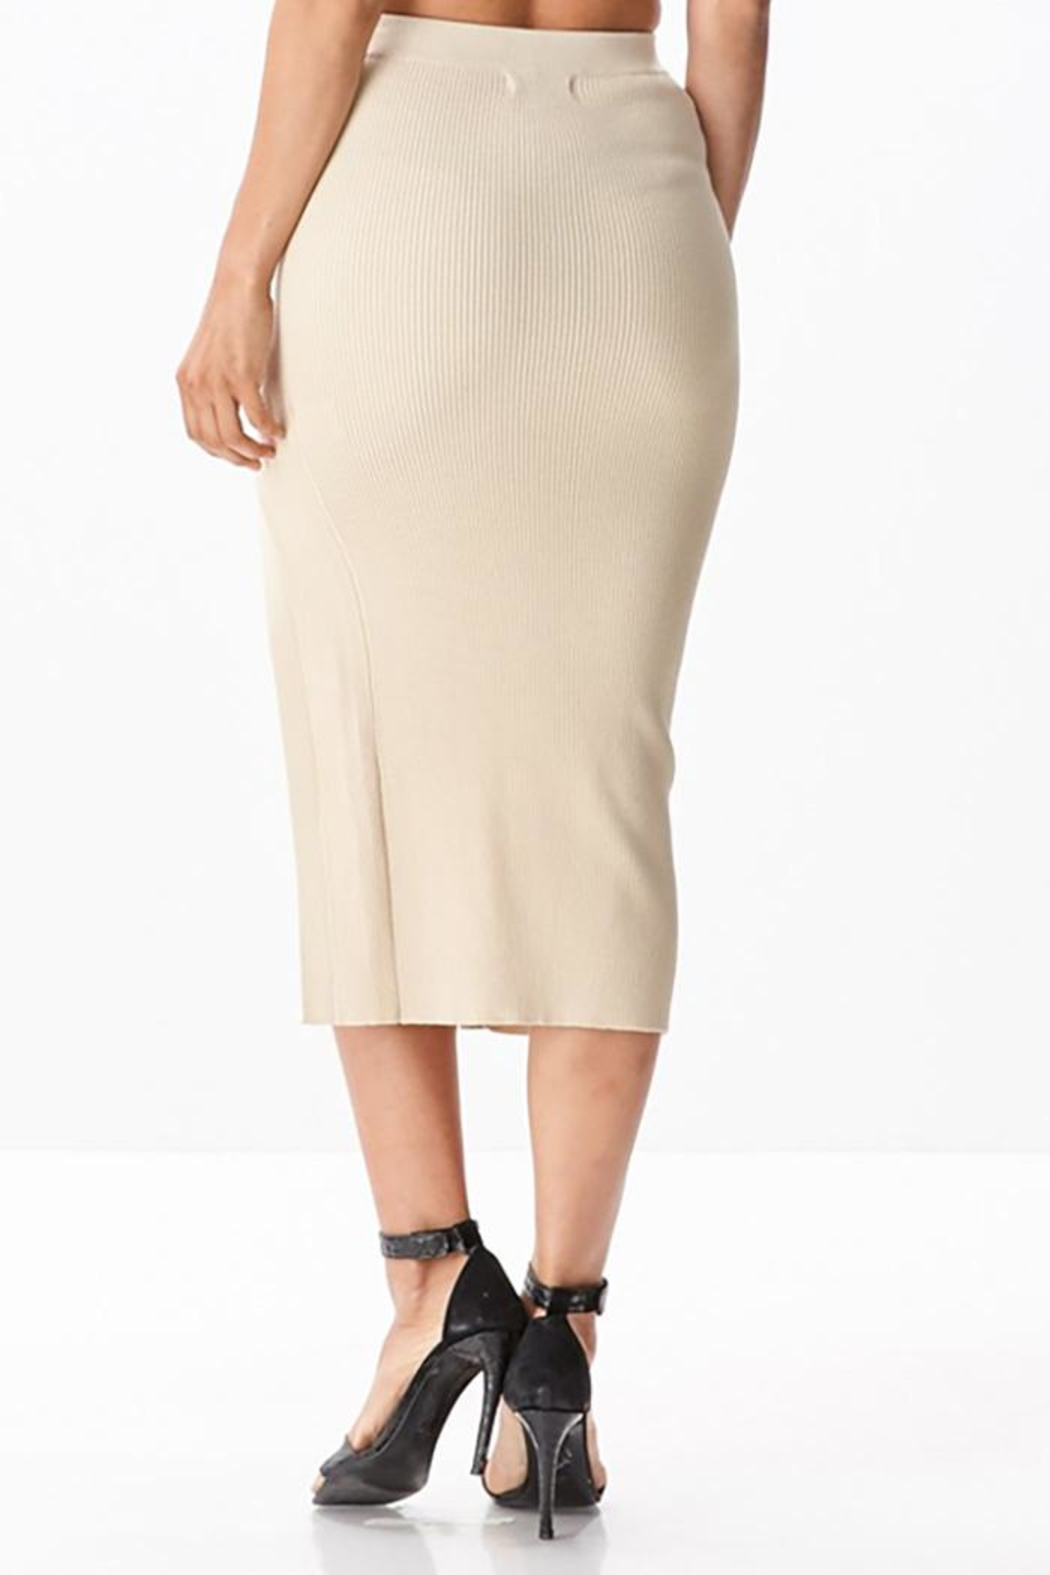 hera collection Side Lattice Midi-Skirt - Back Cropped Image